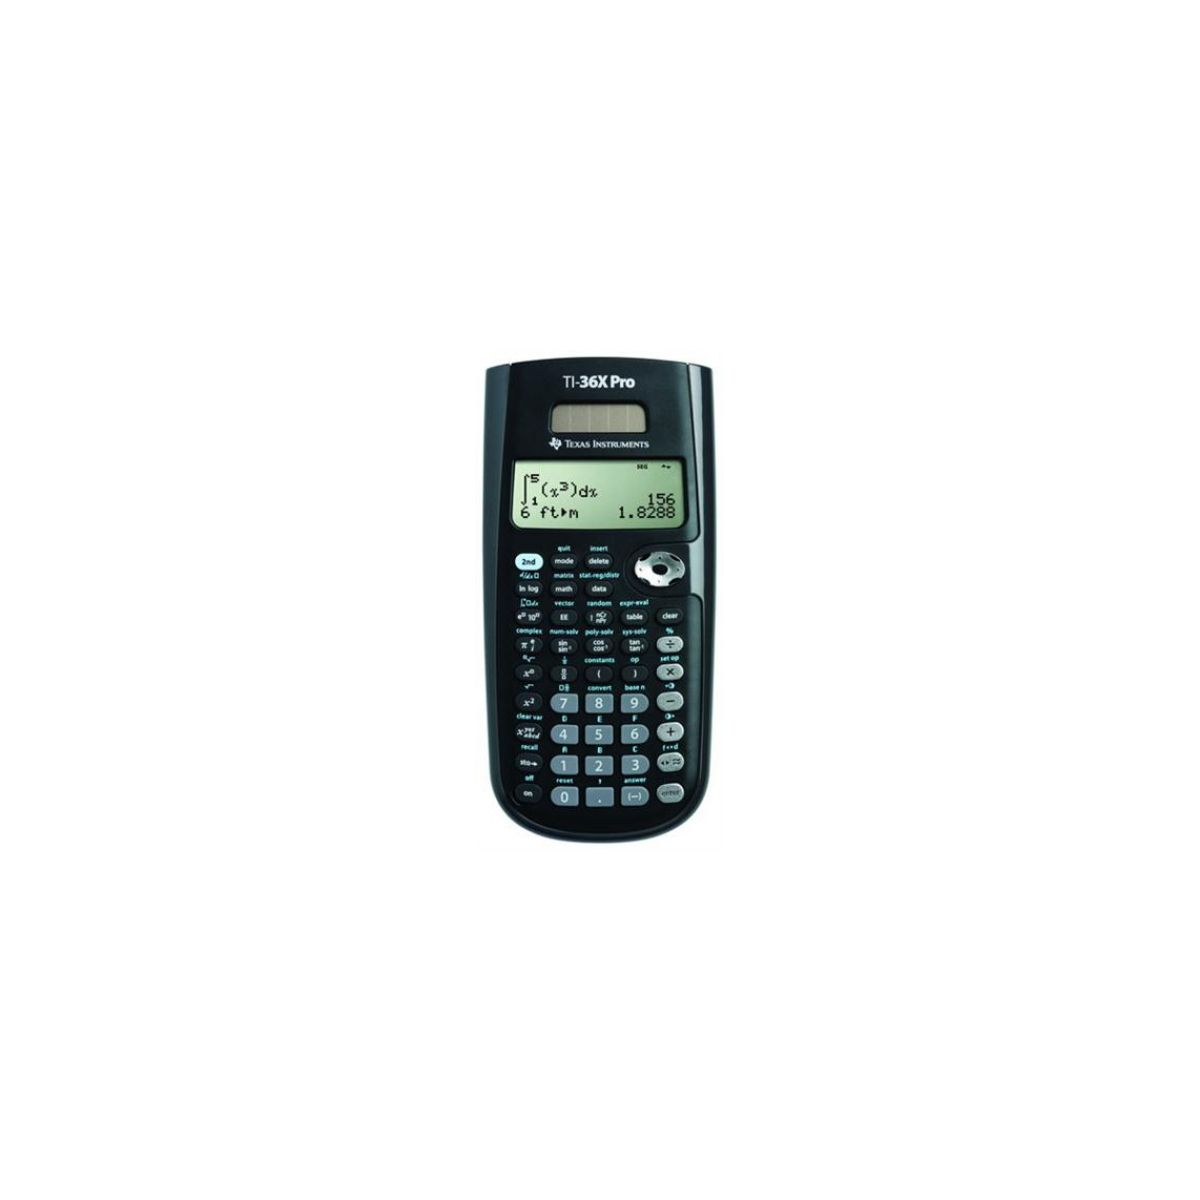 Calculatrice scientifique TEXAS INSTRUMENTS TI-36X Pro (photo)